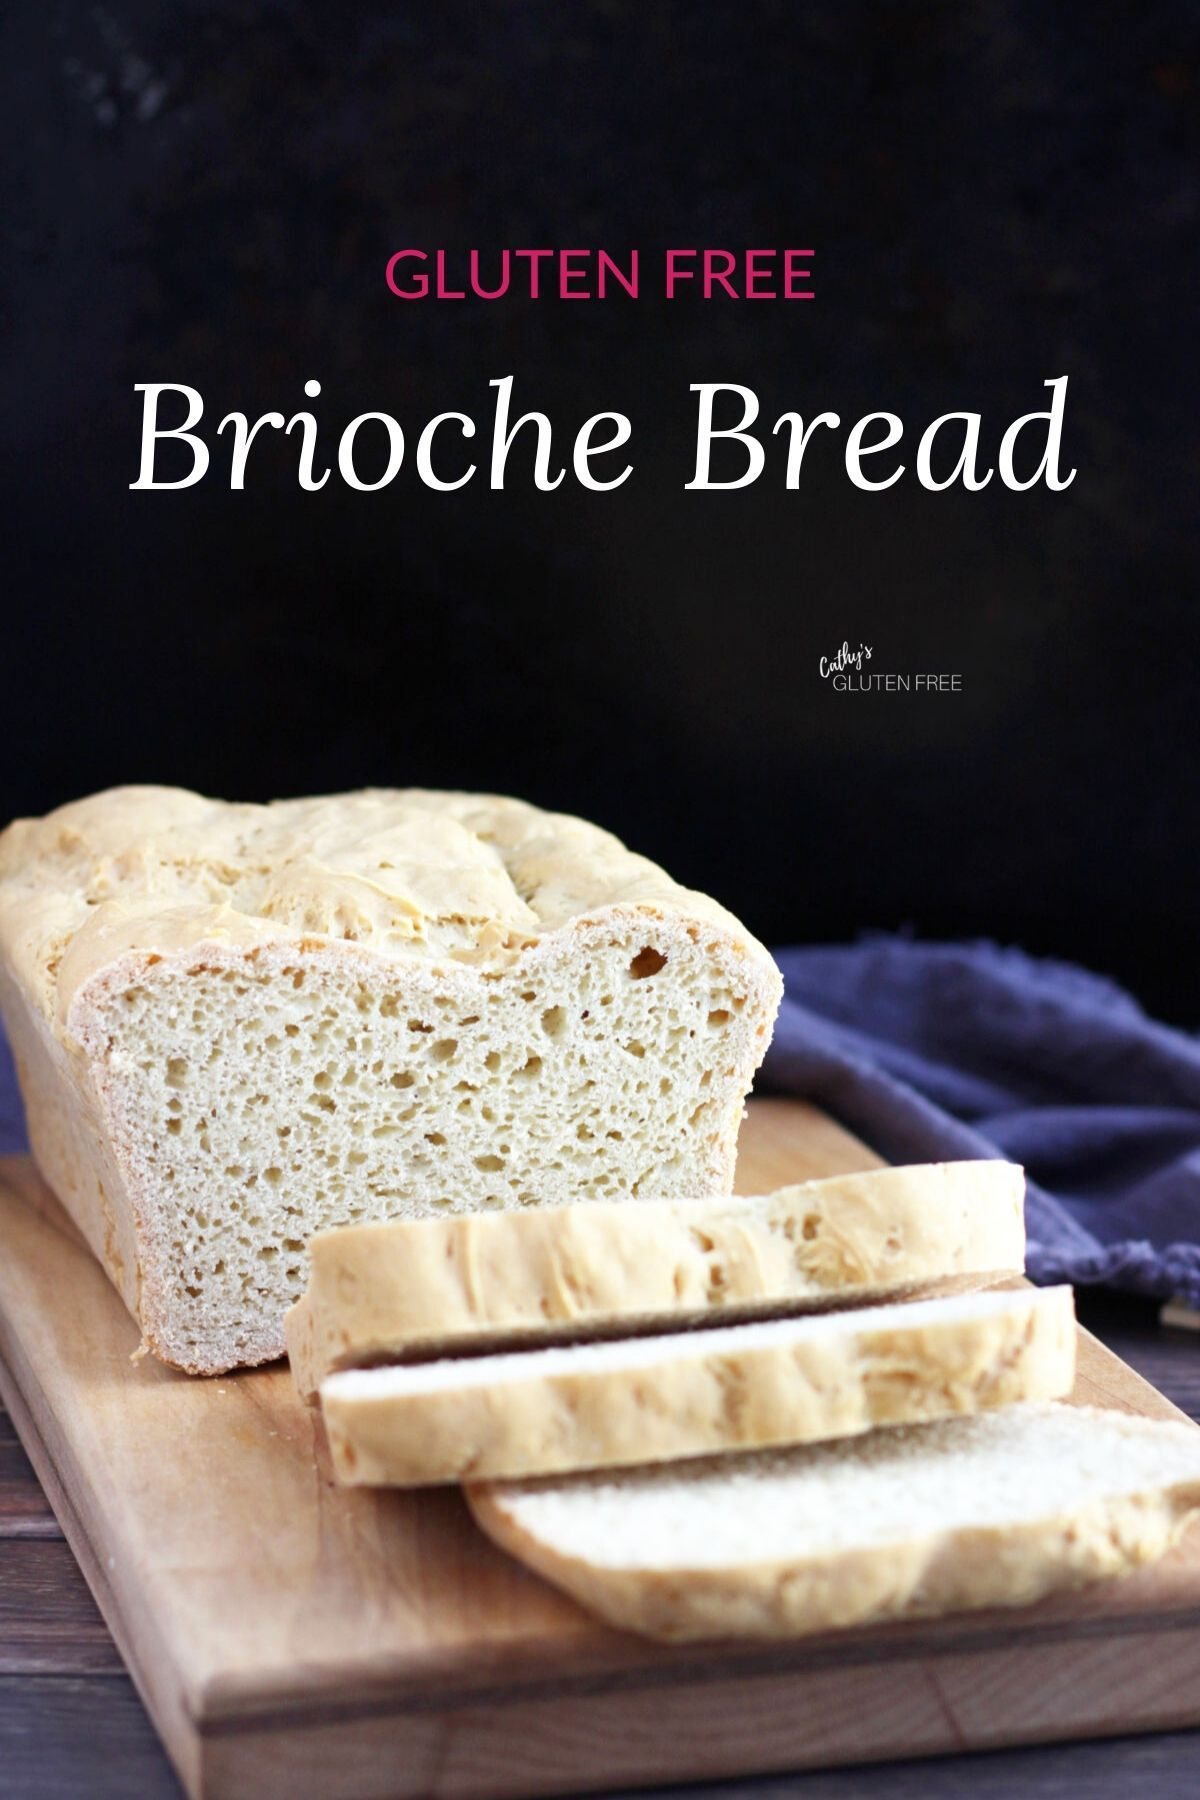 Gluten Free Brioche Bread Recipe In 2020 Brioche Bread Bread Recipes With Yeast